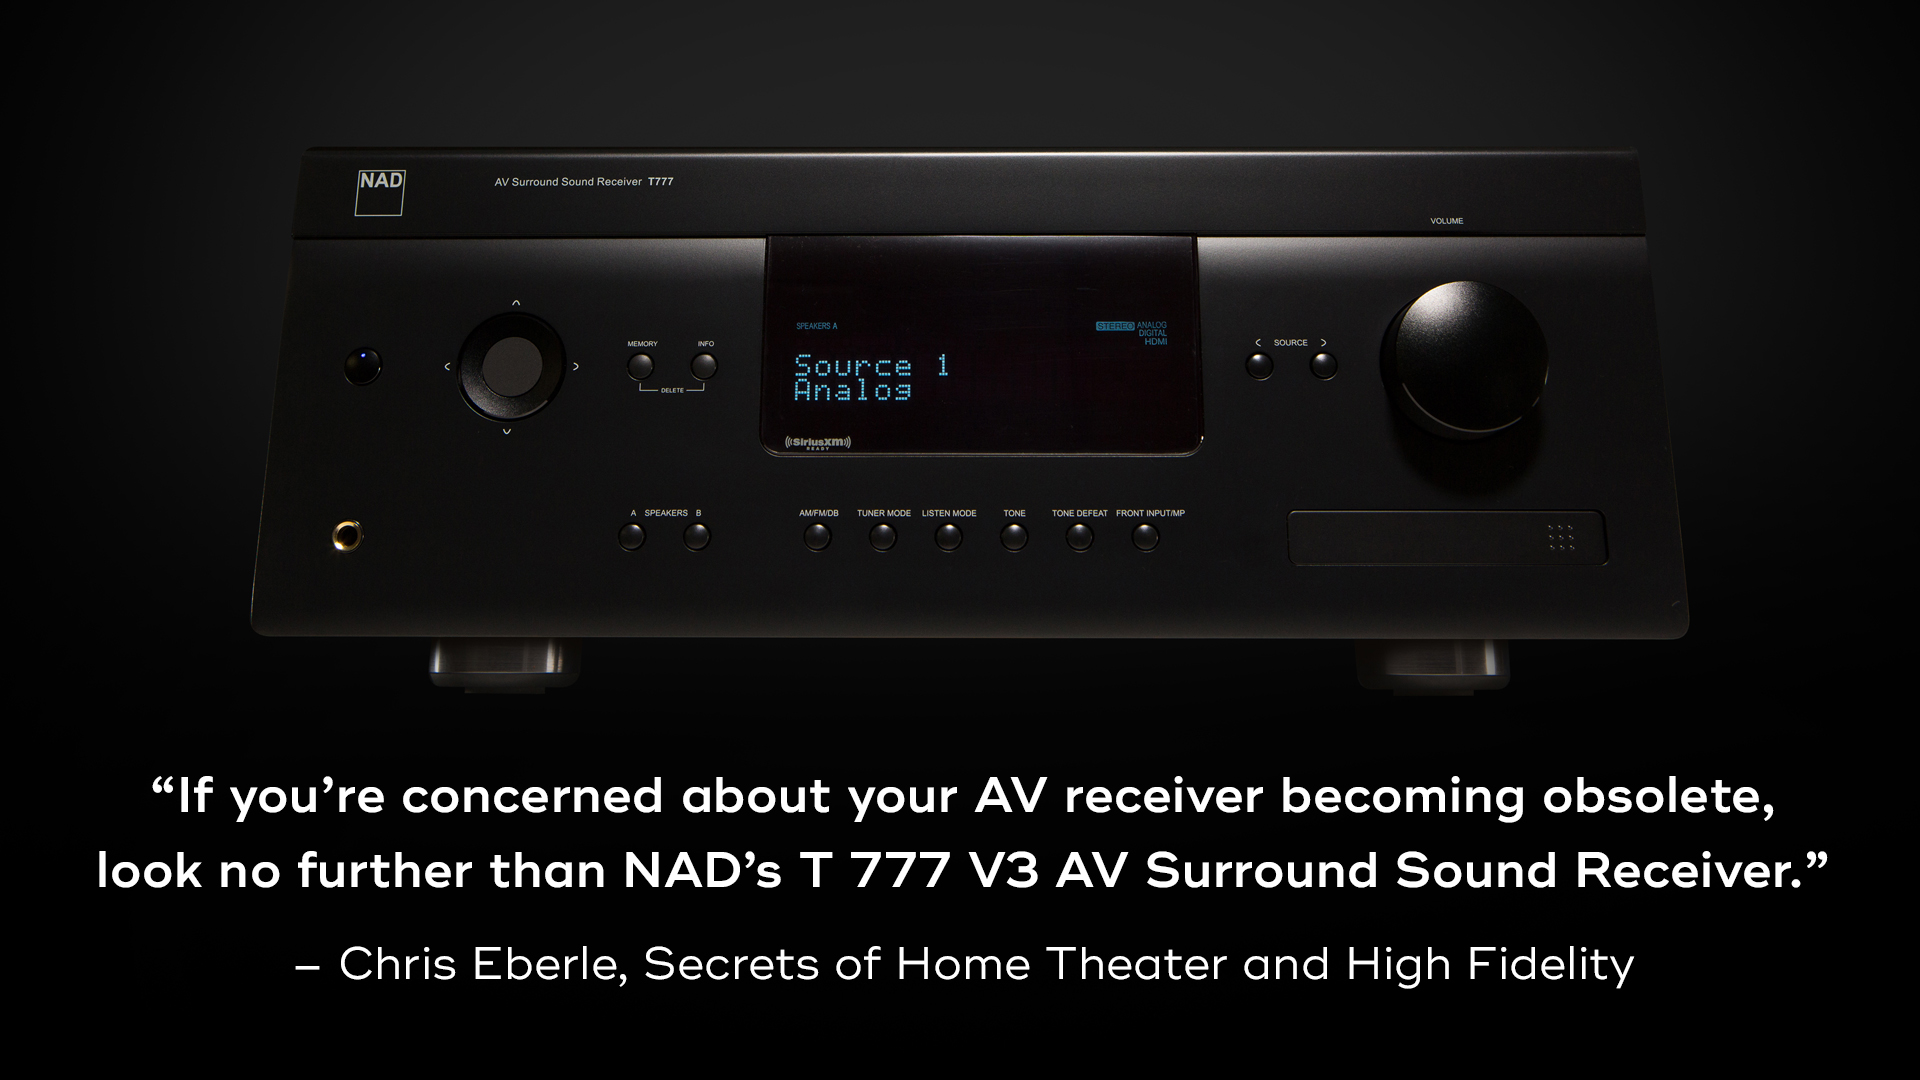 NAD T 777 V3 Home Theater HiFi Review